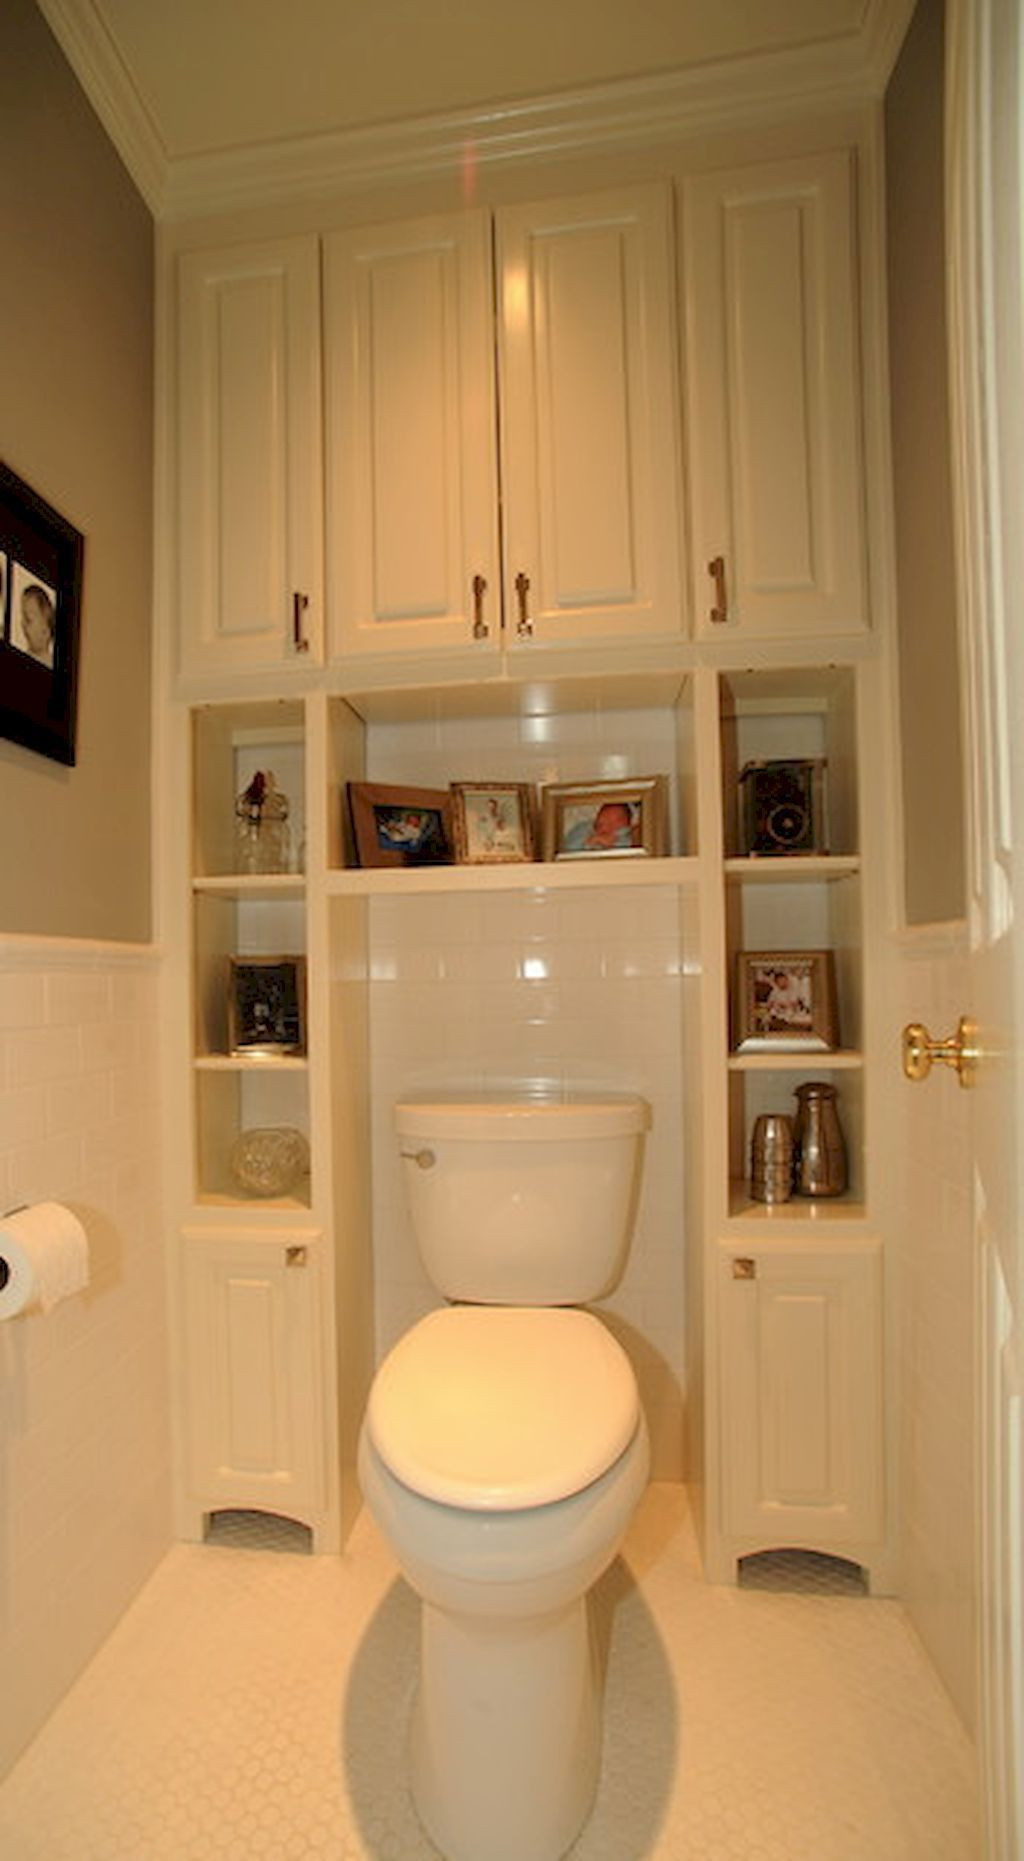 55 Innovative and Cool Ideas for Bathroom Storage Cabinet | Bathroom ...